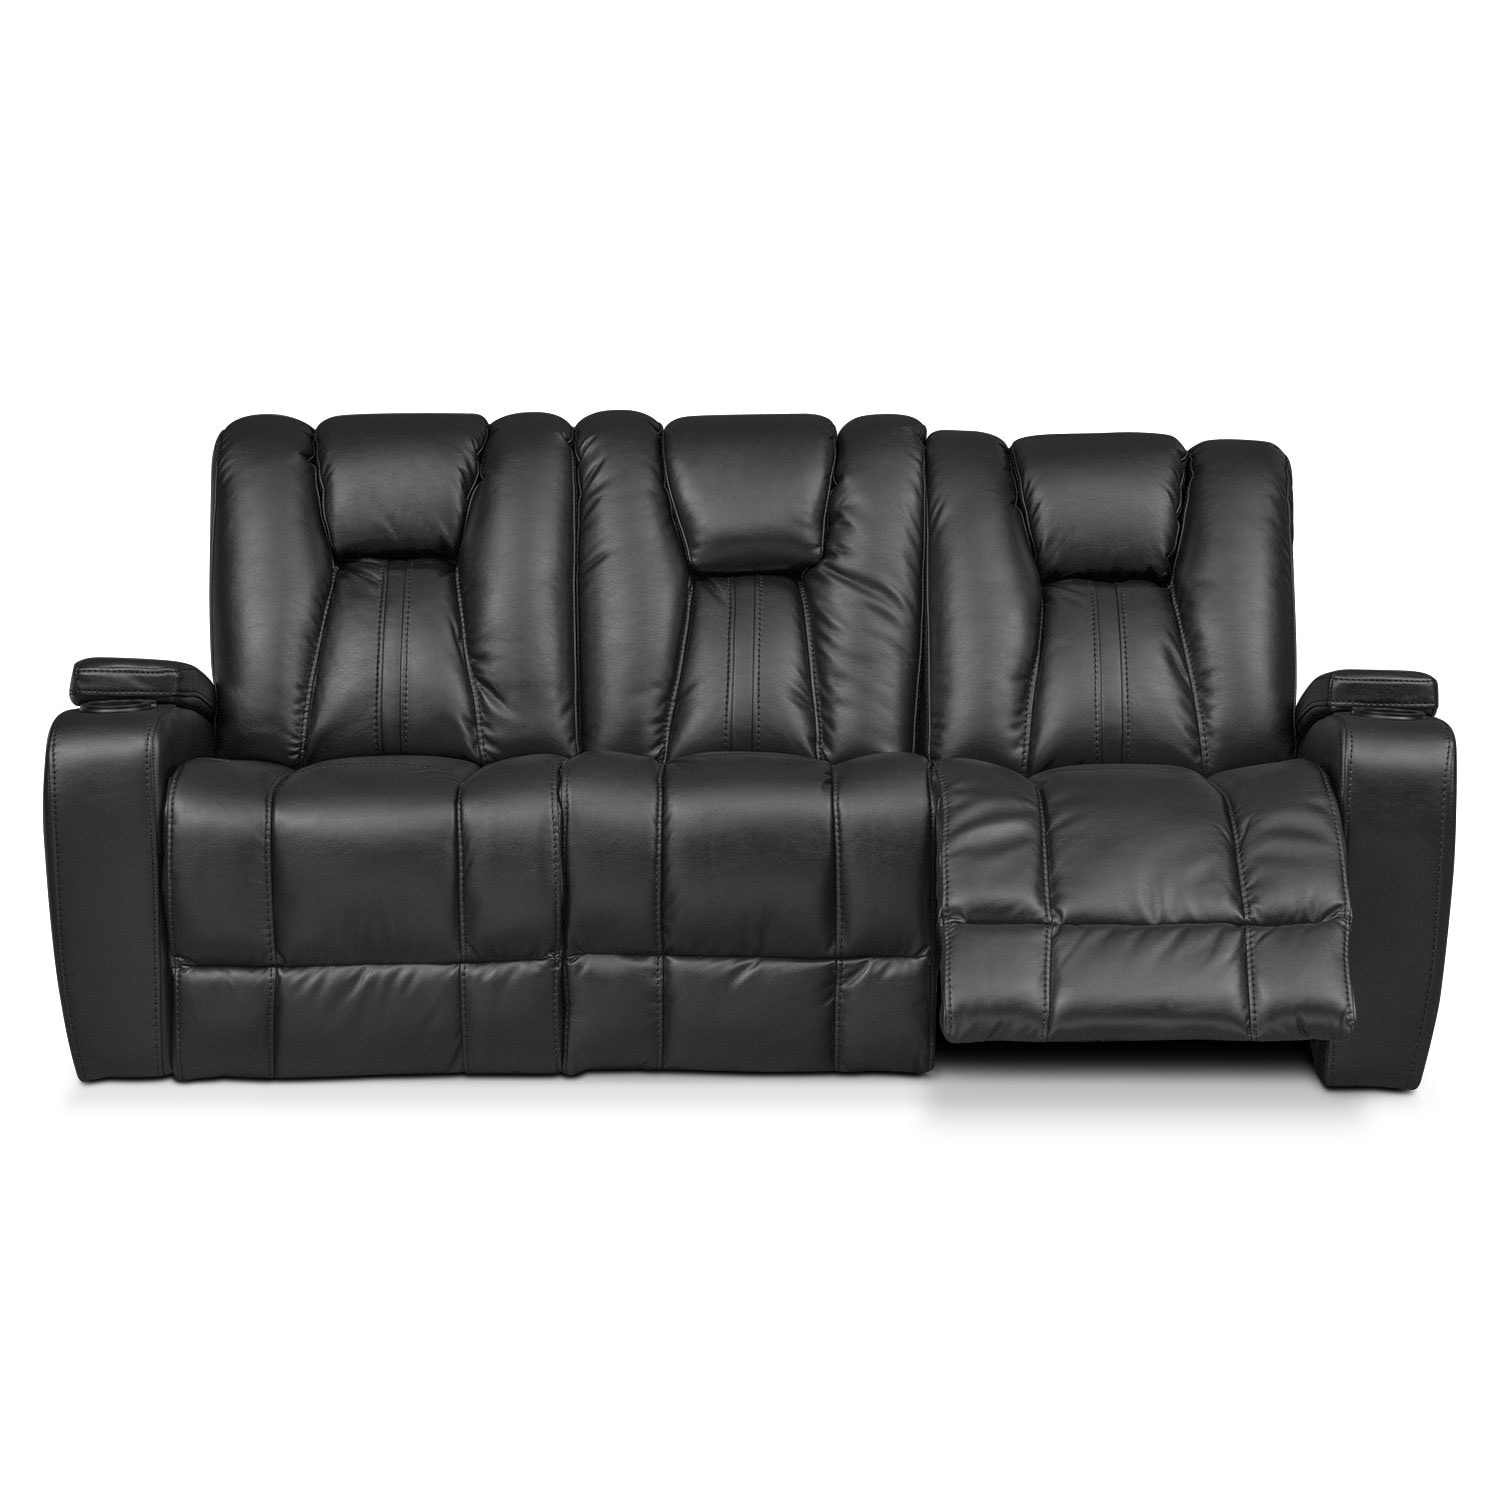 Power Recliner Sofa Deals 1025theparty Com ~ Baycliffe Reclining Sofa Reviews